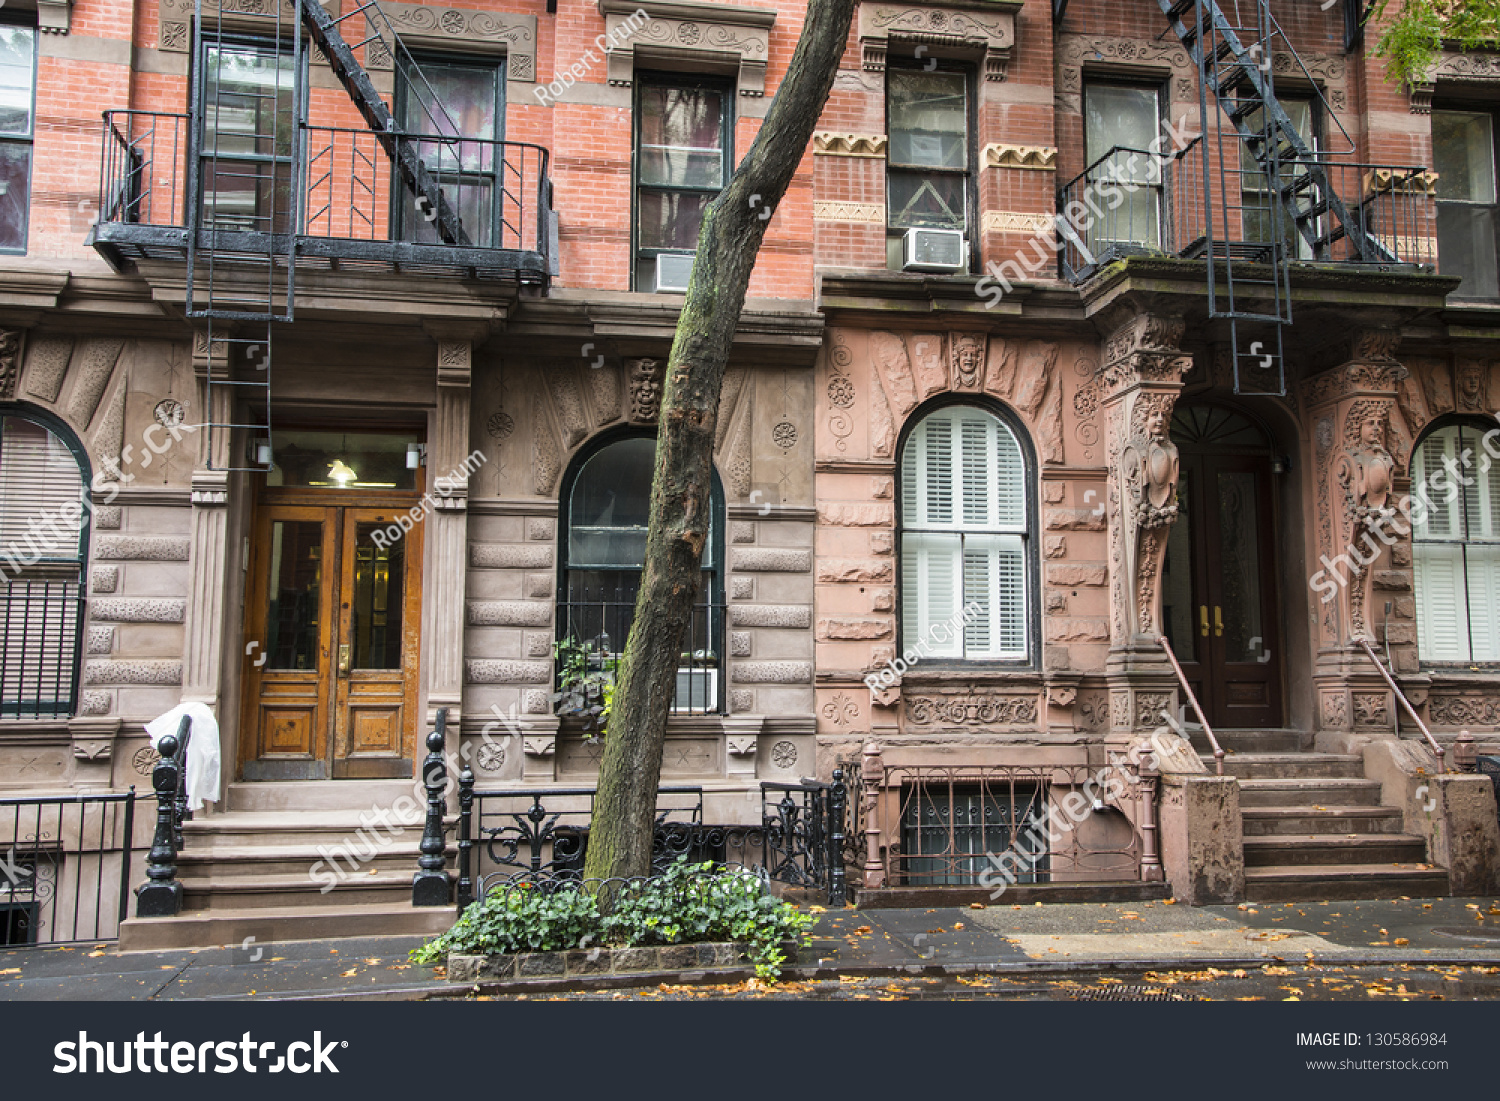 Old greenwich village apartment buildings new stock photo 130586984 shutterstock - The modern apartment in the old school ...